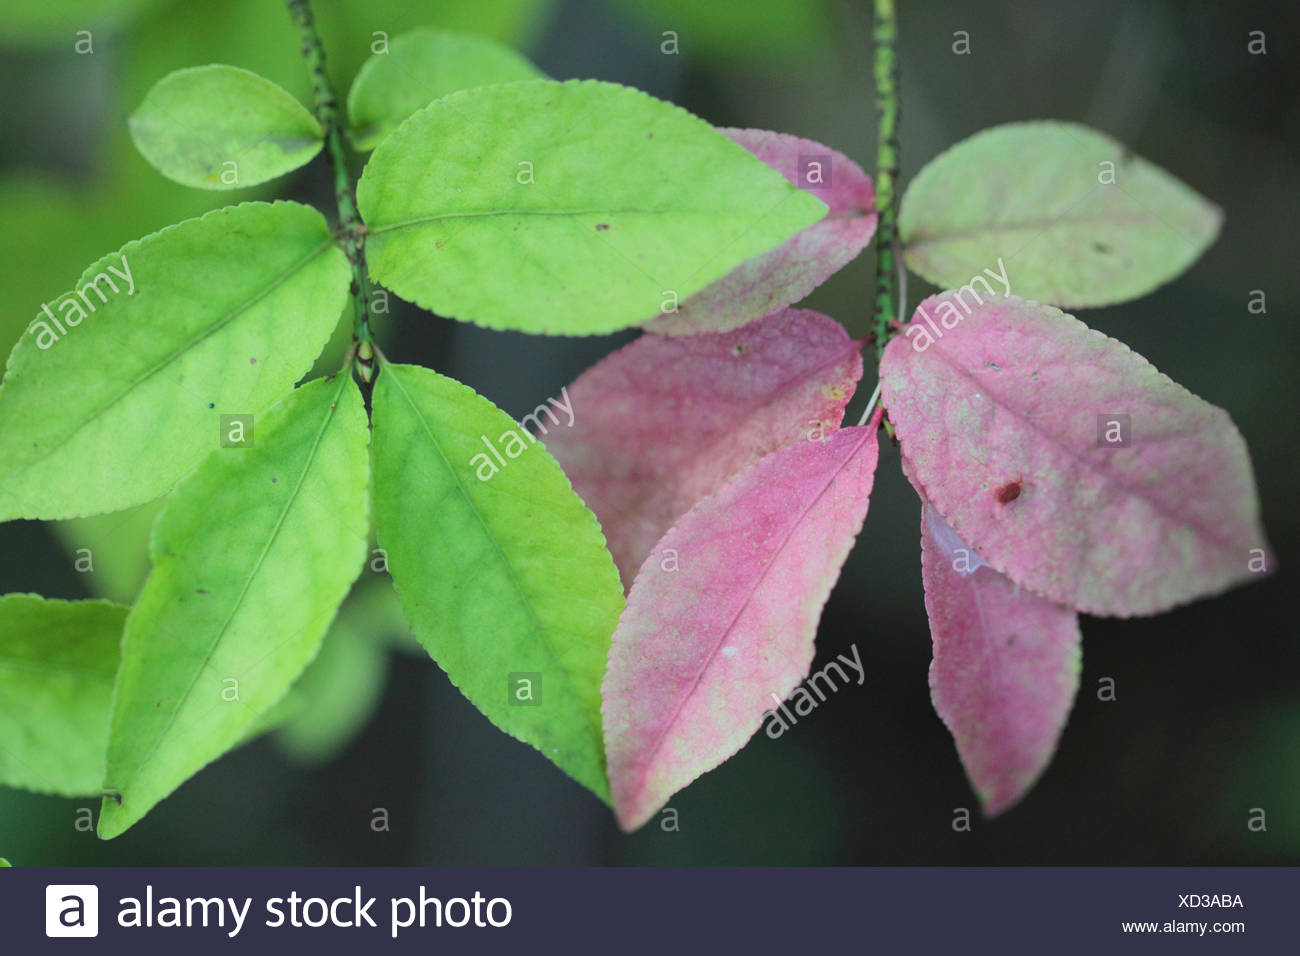 Close up of spindle, European spindle, or common spindle leaves, Euonymus europaeus, a species of flowering plant in the family Celastraceae, native to much of Europe. It is a deciduous shrub or small tree. - Stock Image